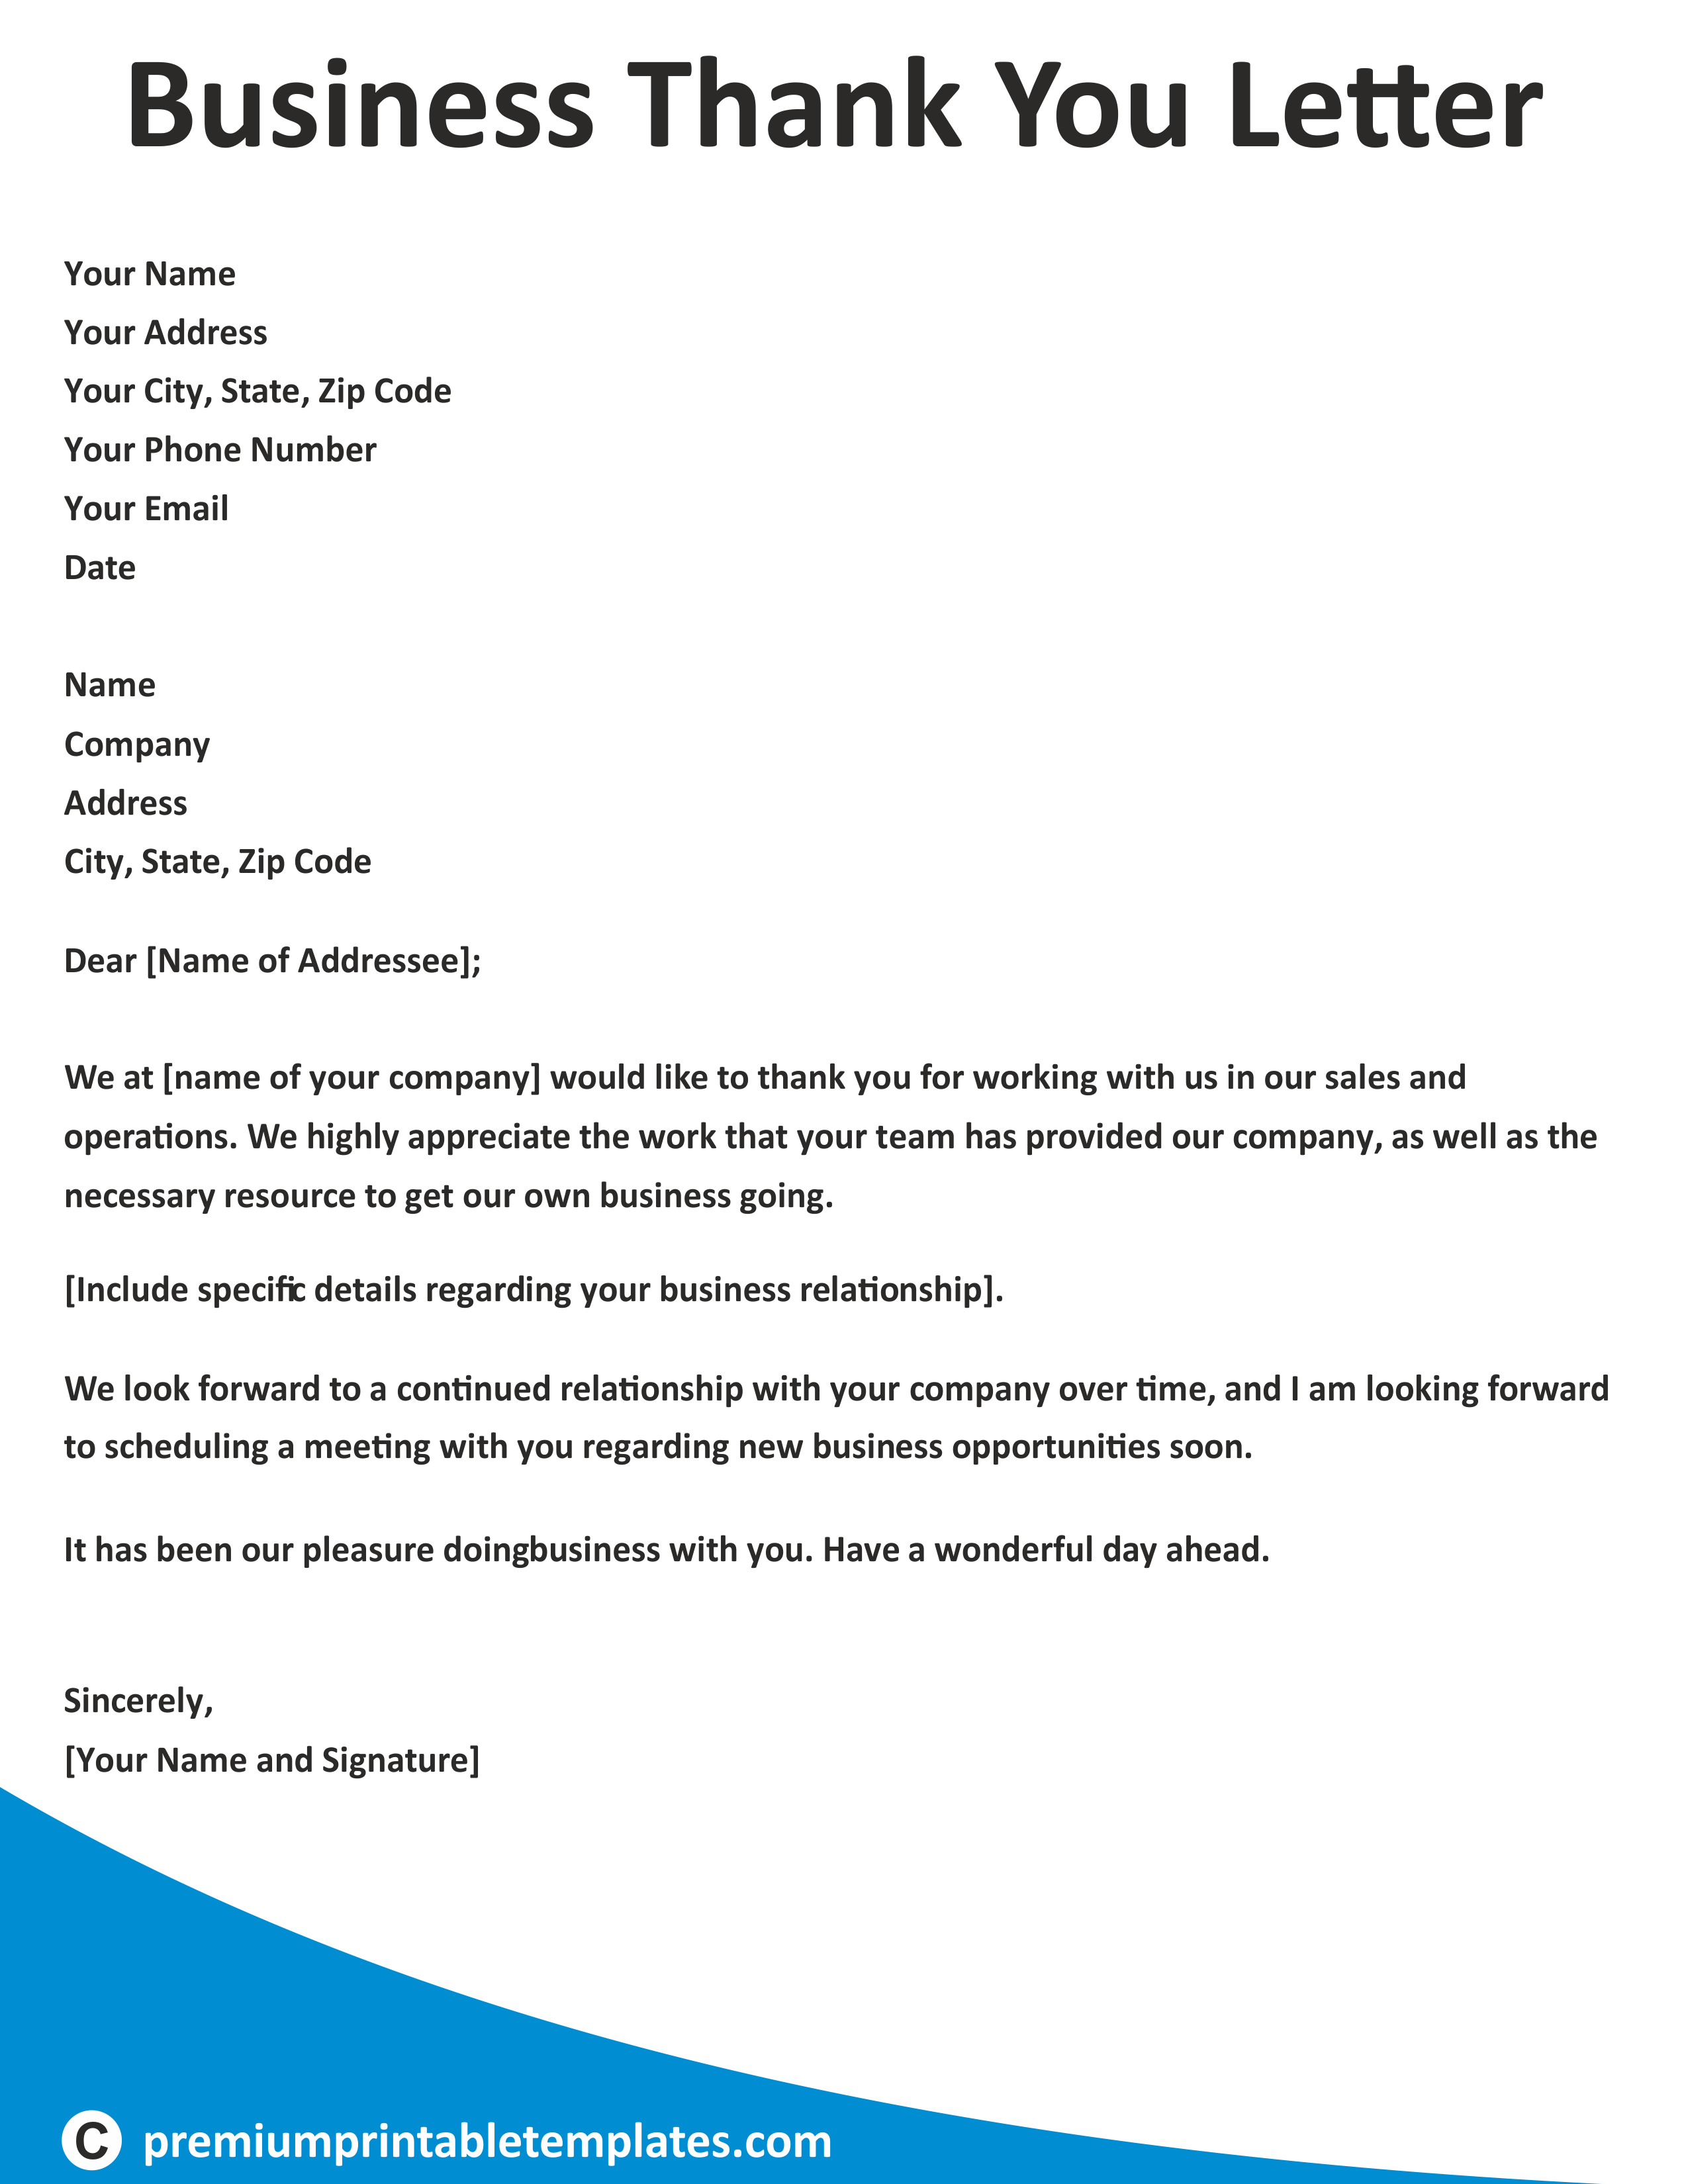 Business Thank You Letter Business letter template